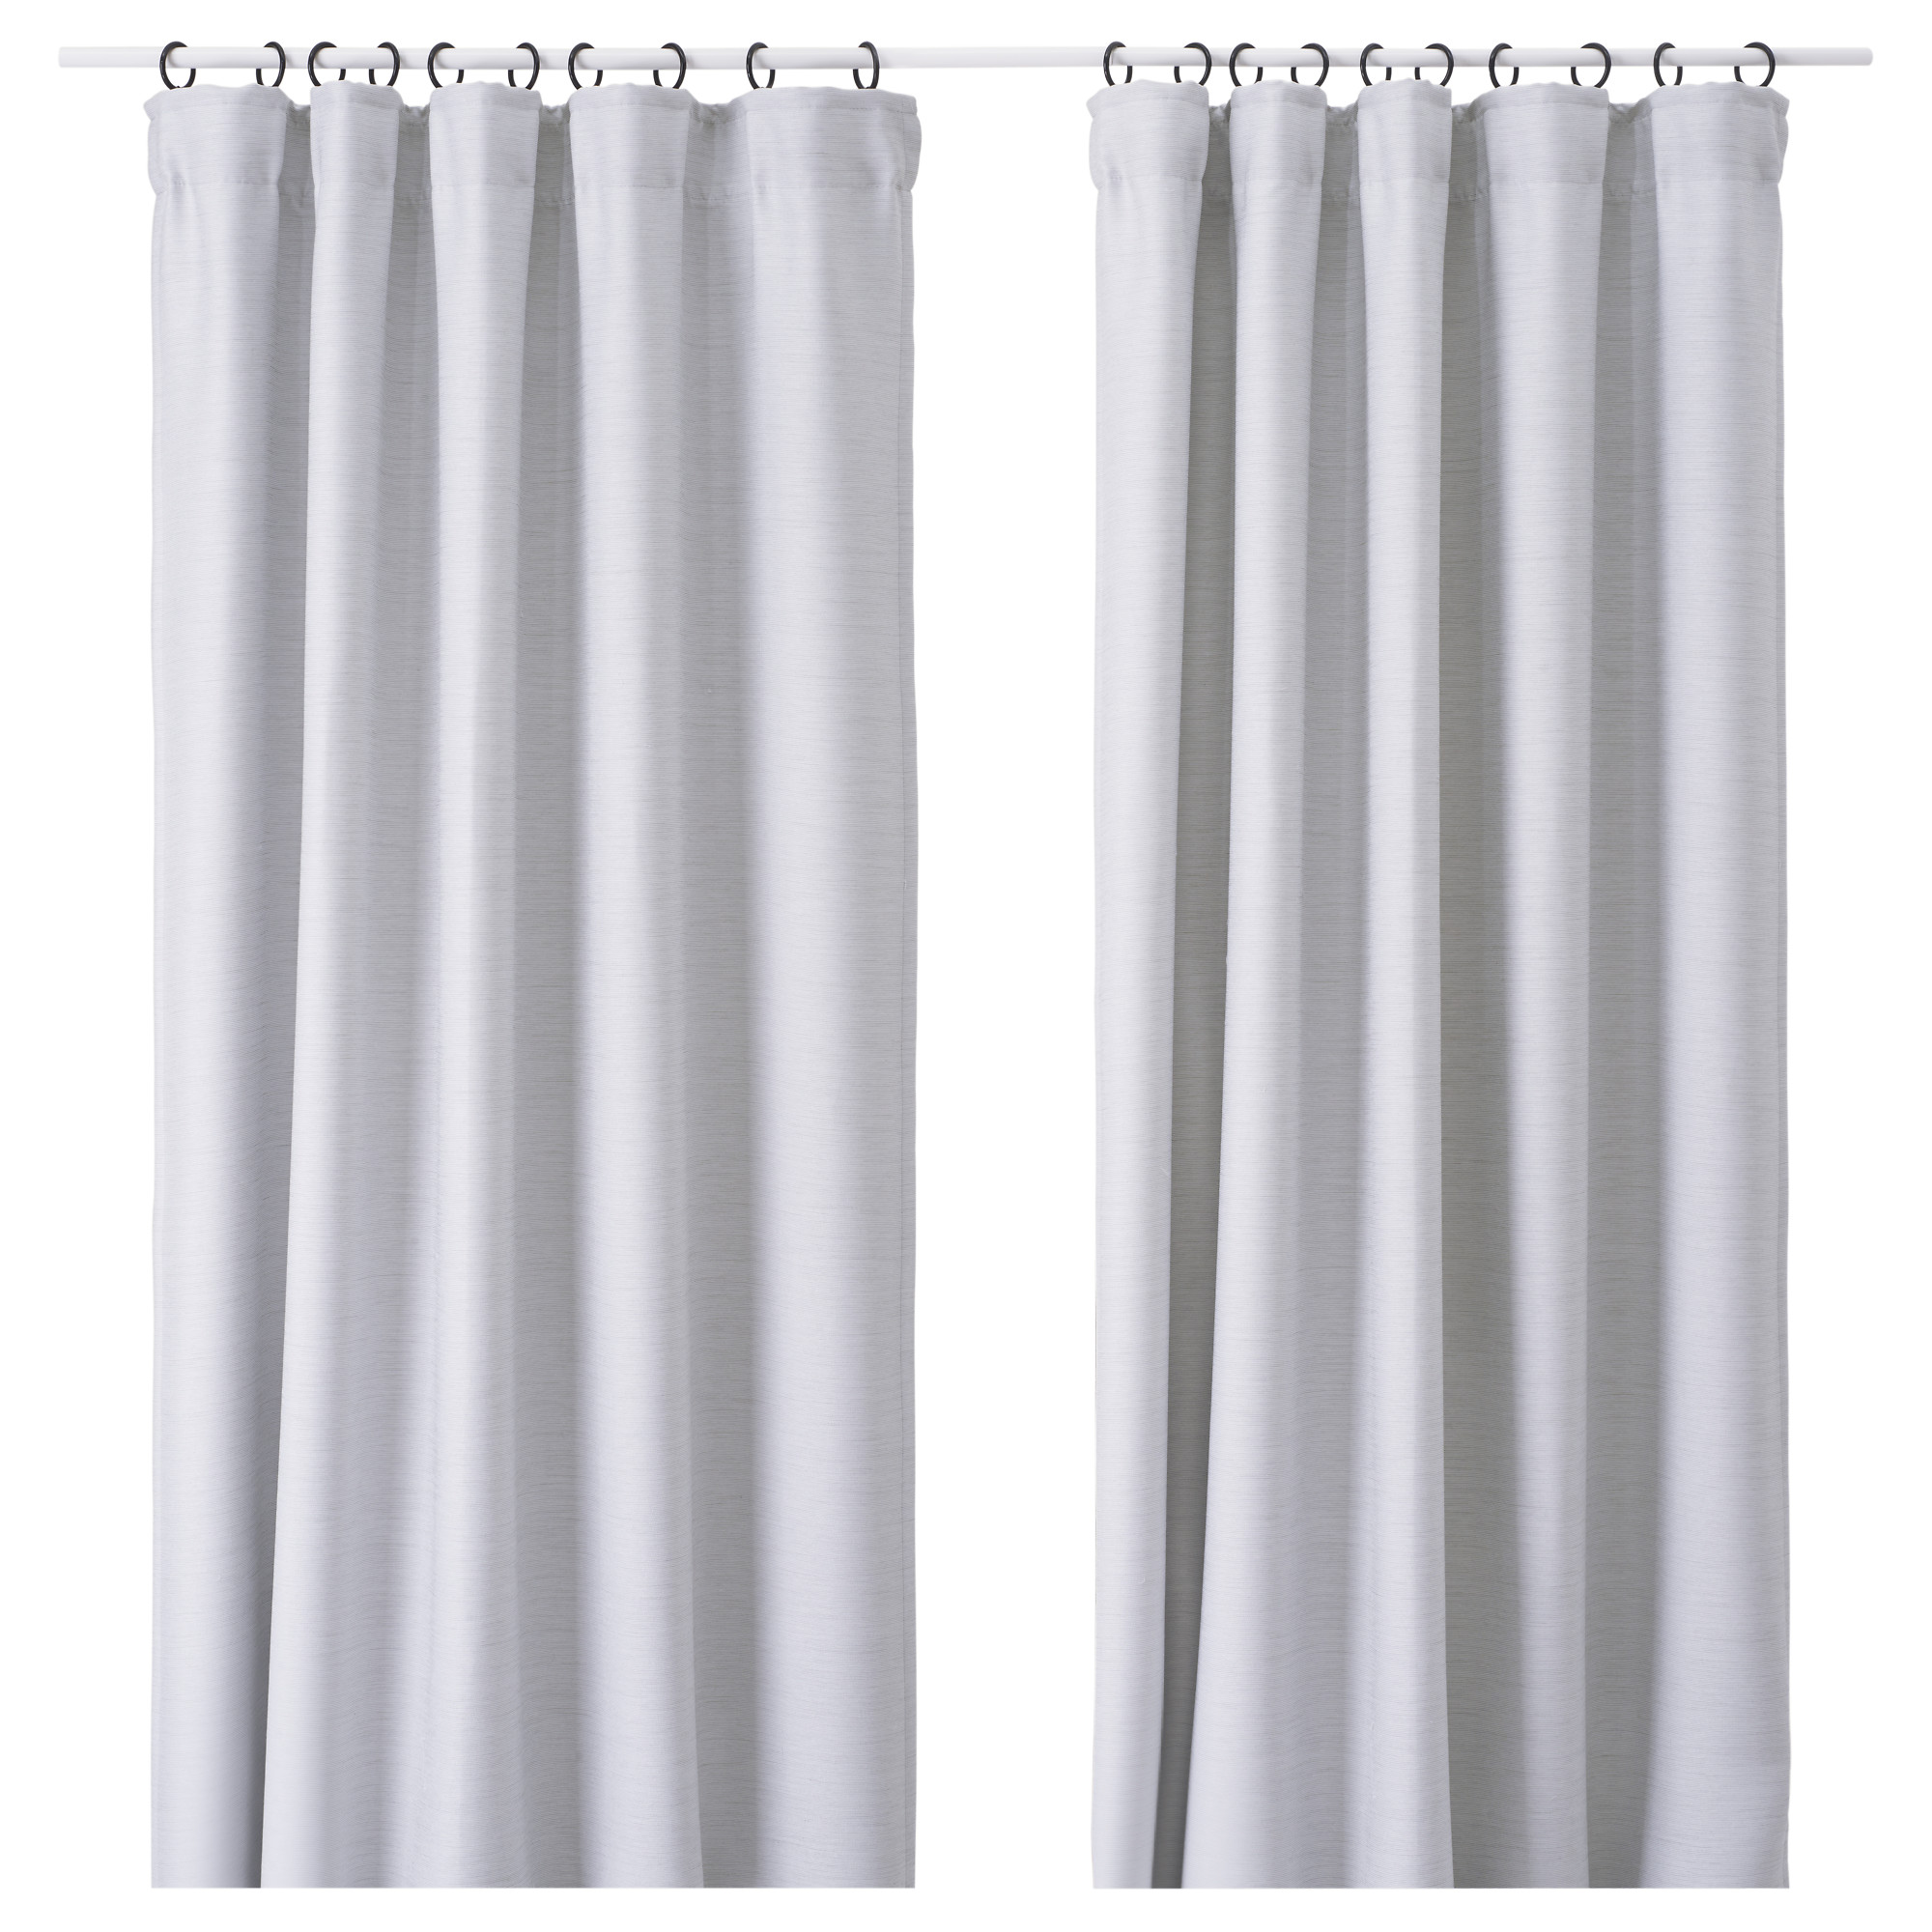 White curtains bedroom - Vilborg Curtains 1 Pair Light Gray Length 98 Width 57